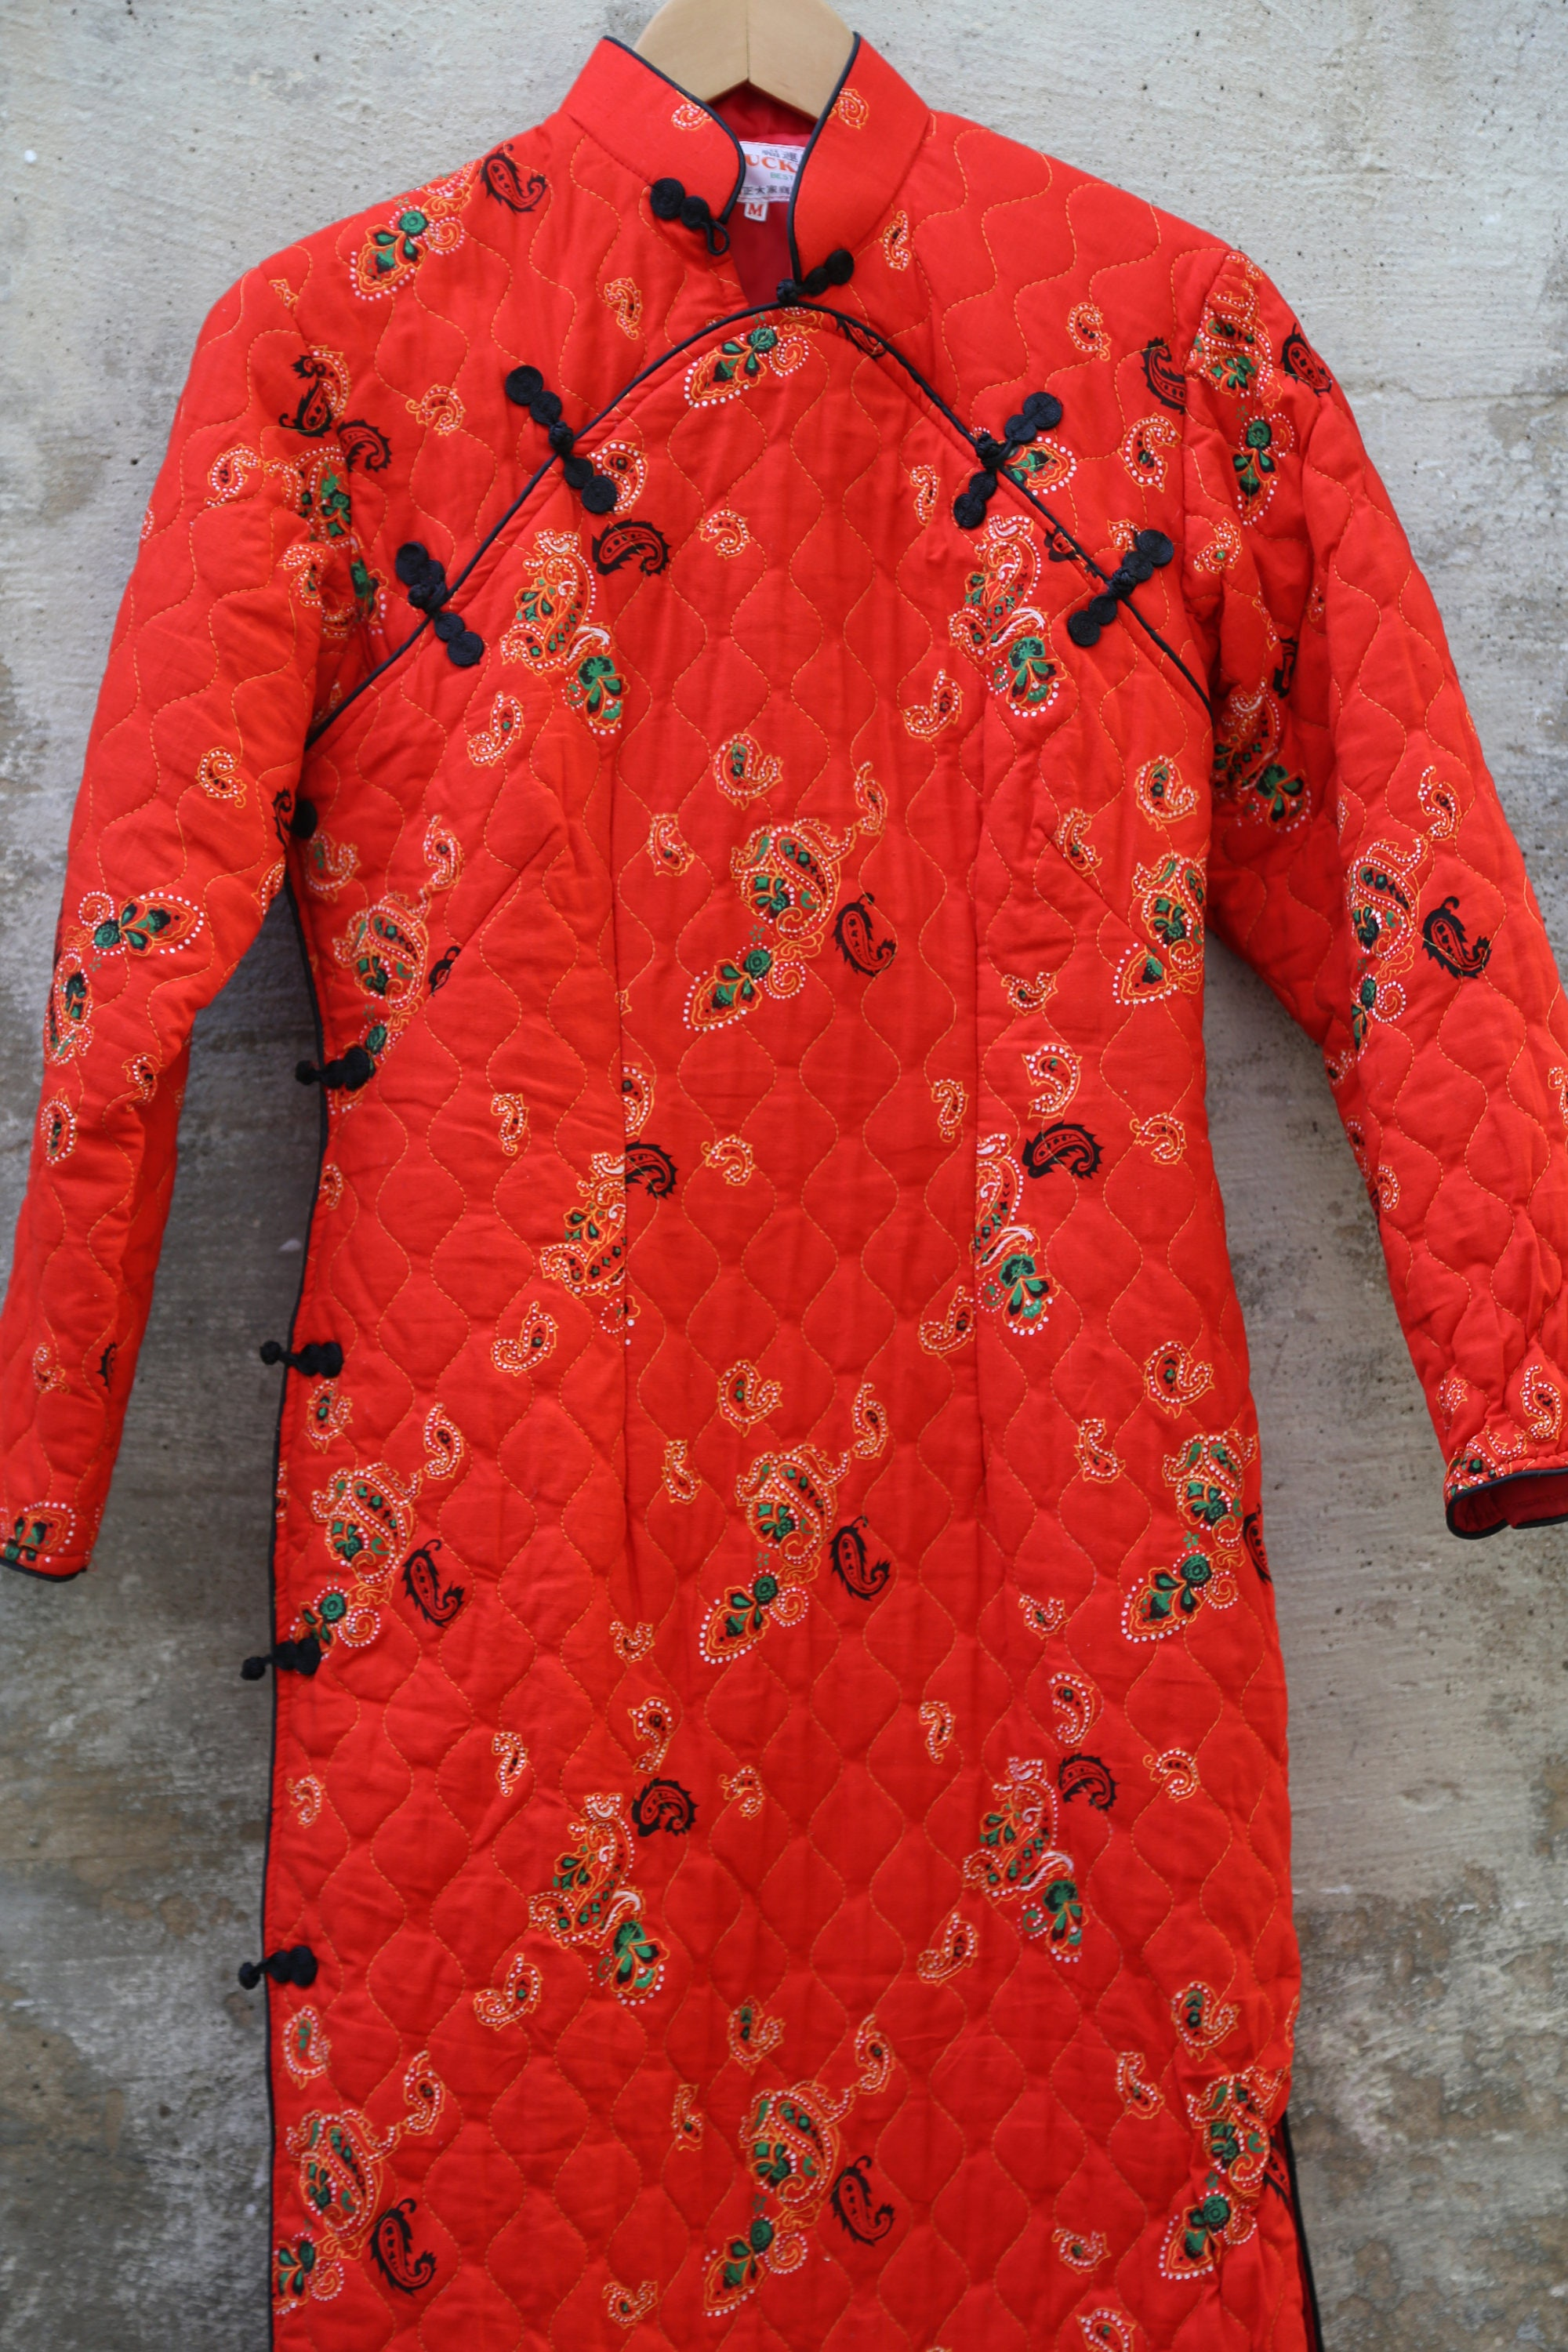 80s Dresses   Casual to Party Dresses Small Red Asian Vintage Kimono Dress Jacket 1980S 80S Lucky Paisley Quilt Blanket 1990S 90S Warm Winter Unique Ethnic 1960S 60 1970S 70S $28.00 AT vintagedancer.com